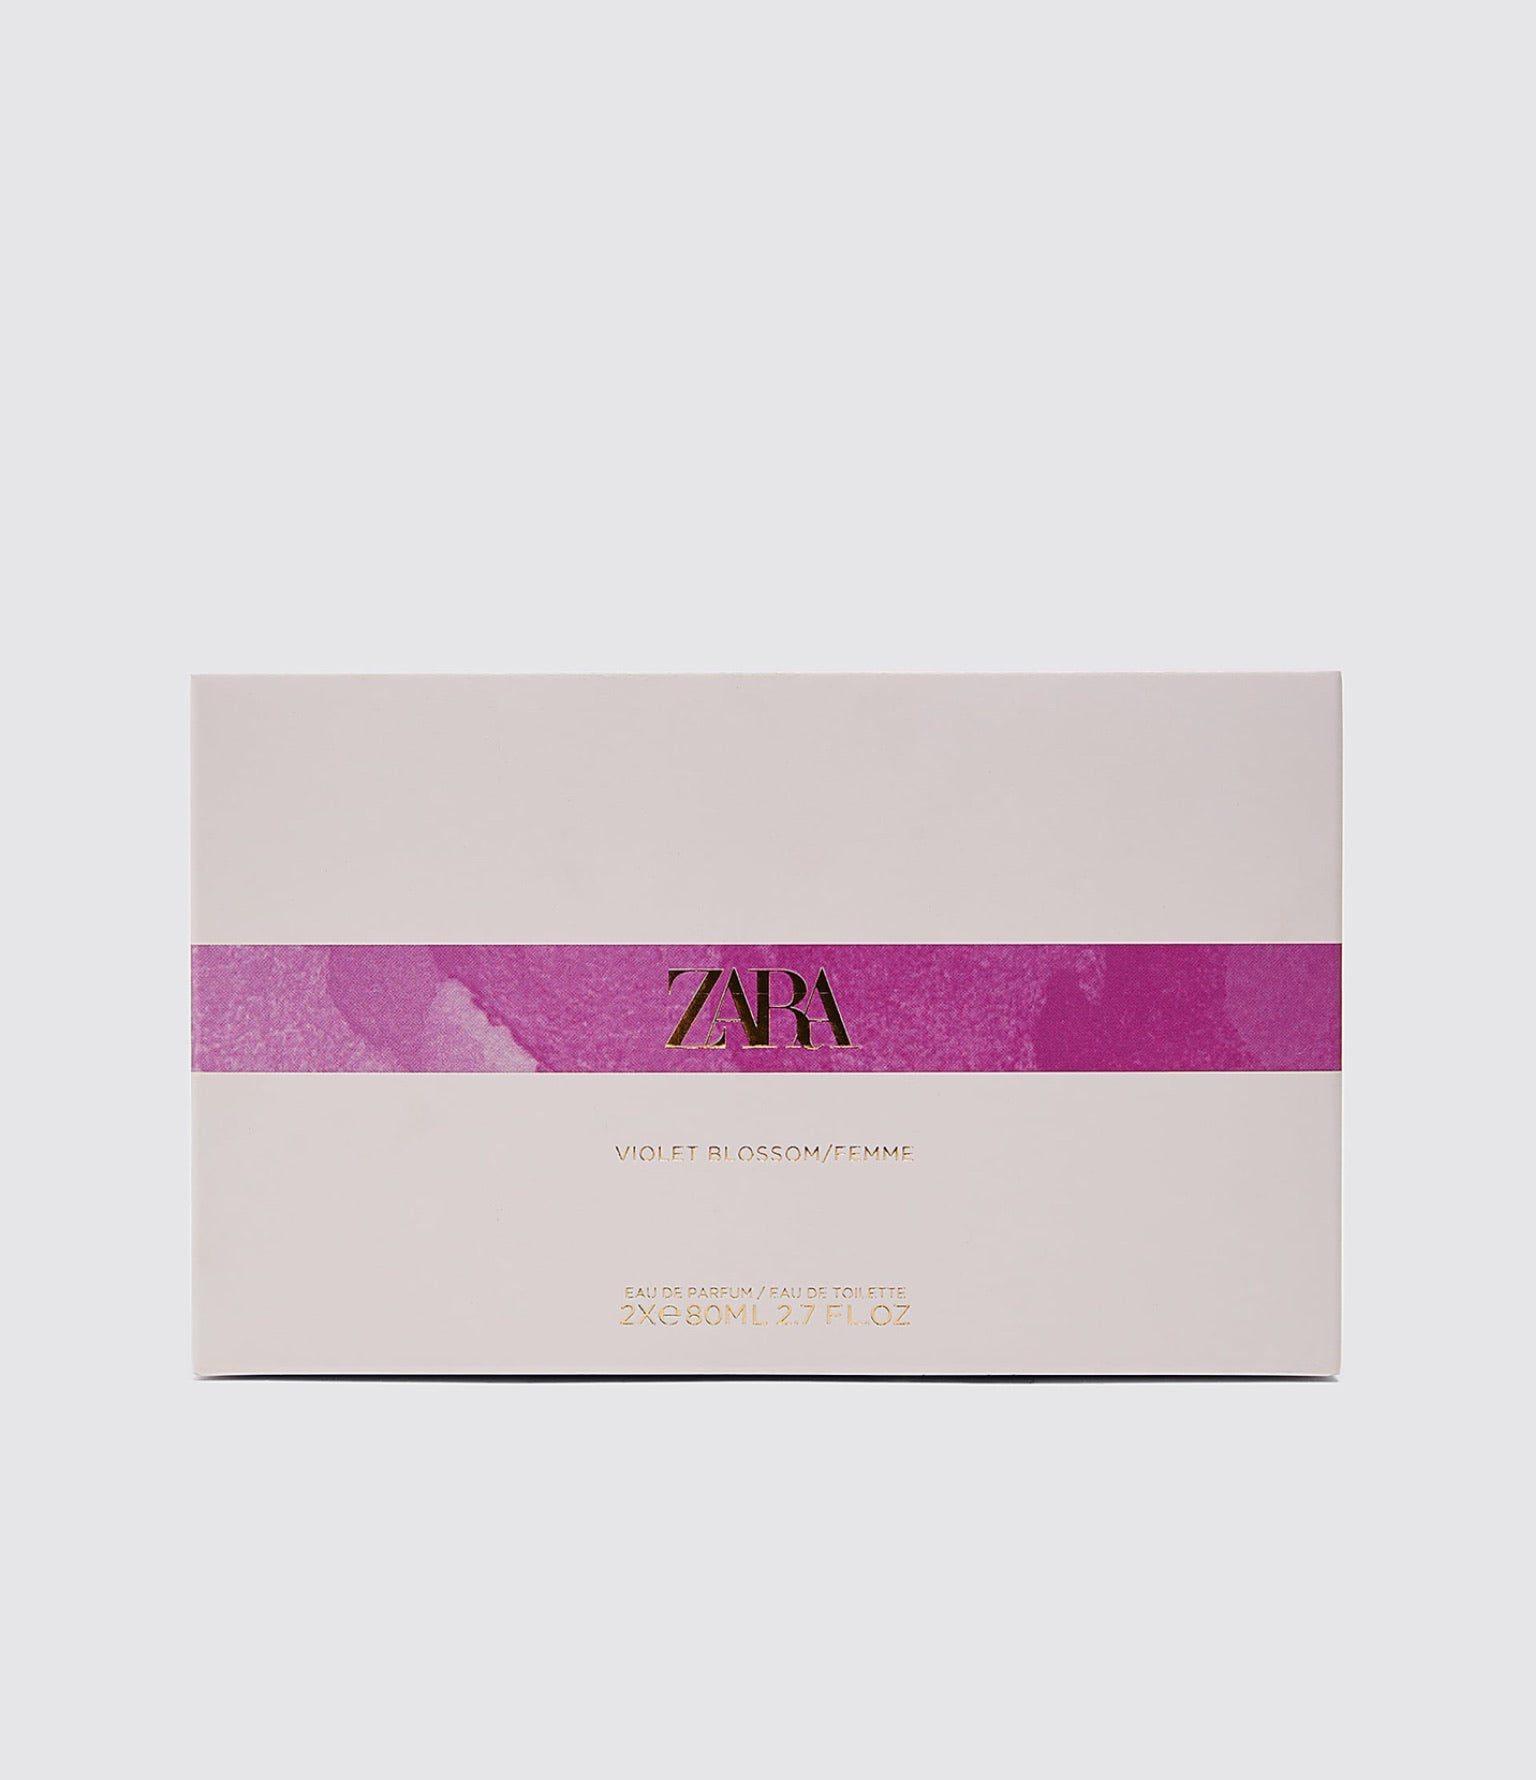 ZARA VIOLET BLOSSOM + FEMME TINTED LEATHER PERFUME 80ML X 2